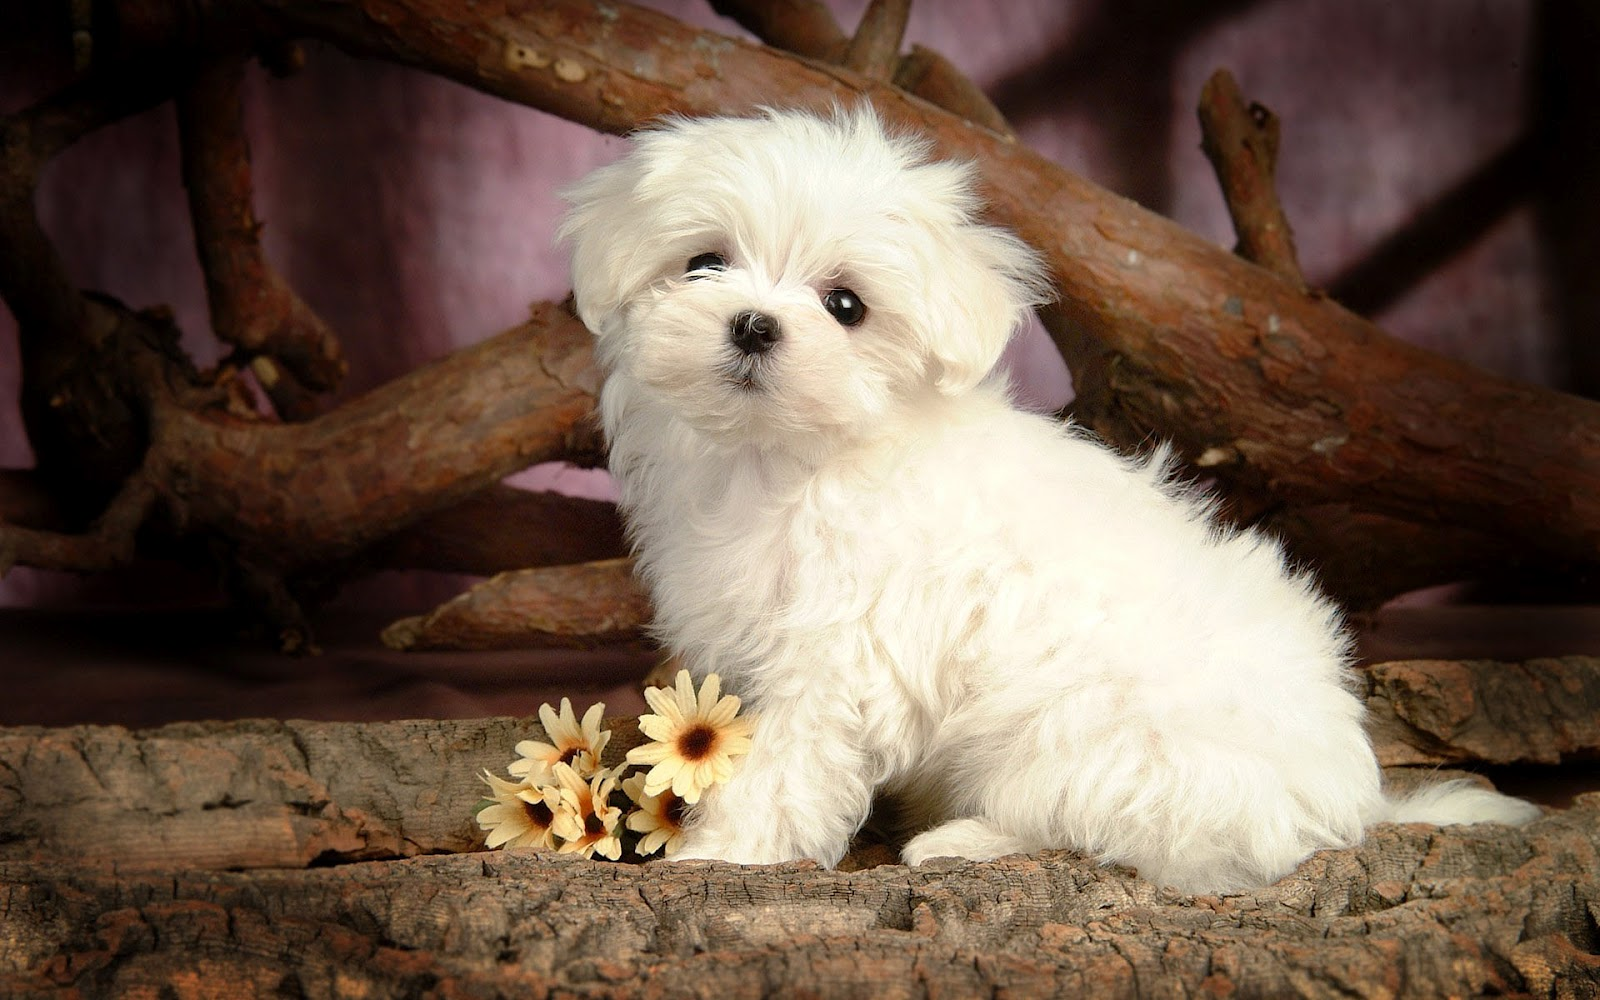 76 Cute Dogs And Puppies Wallpaper On Wallpapersafari